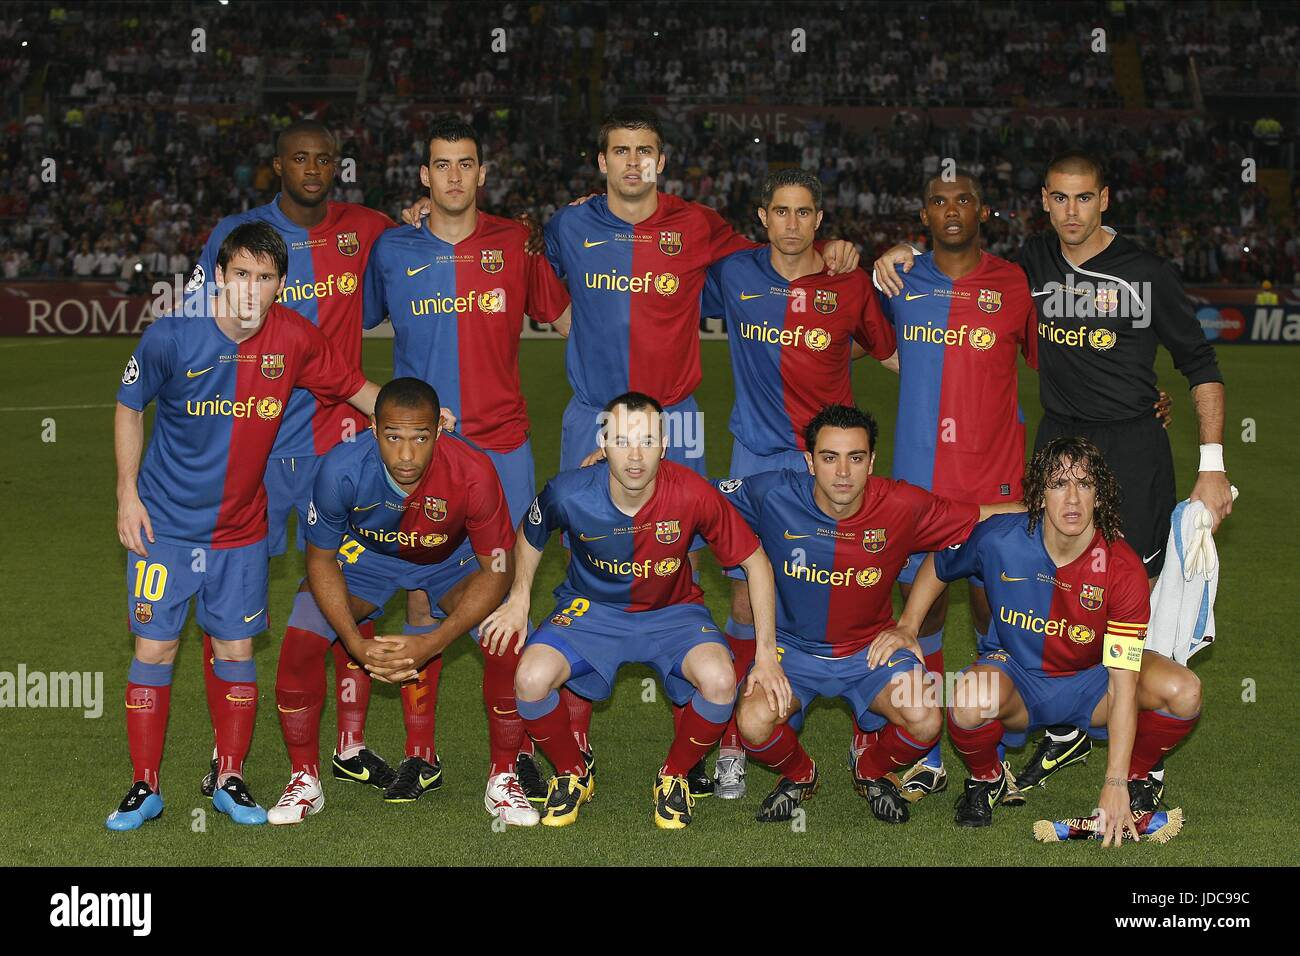 Barcelona Team Group High Resolution Stock Photography And Images Alamy